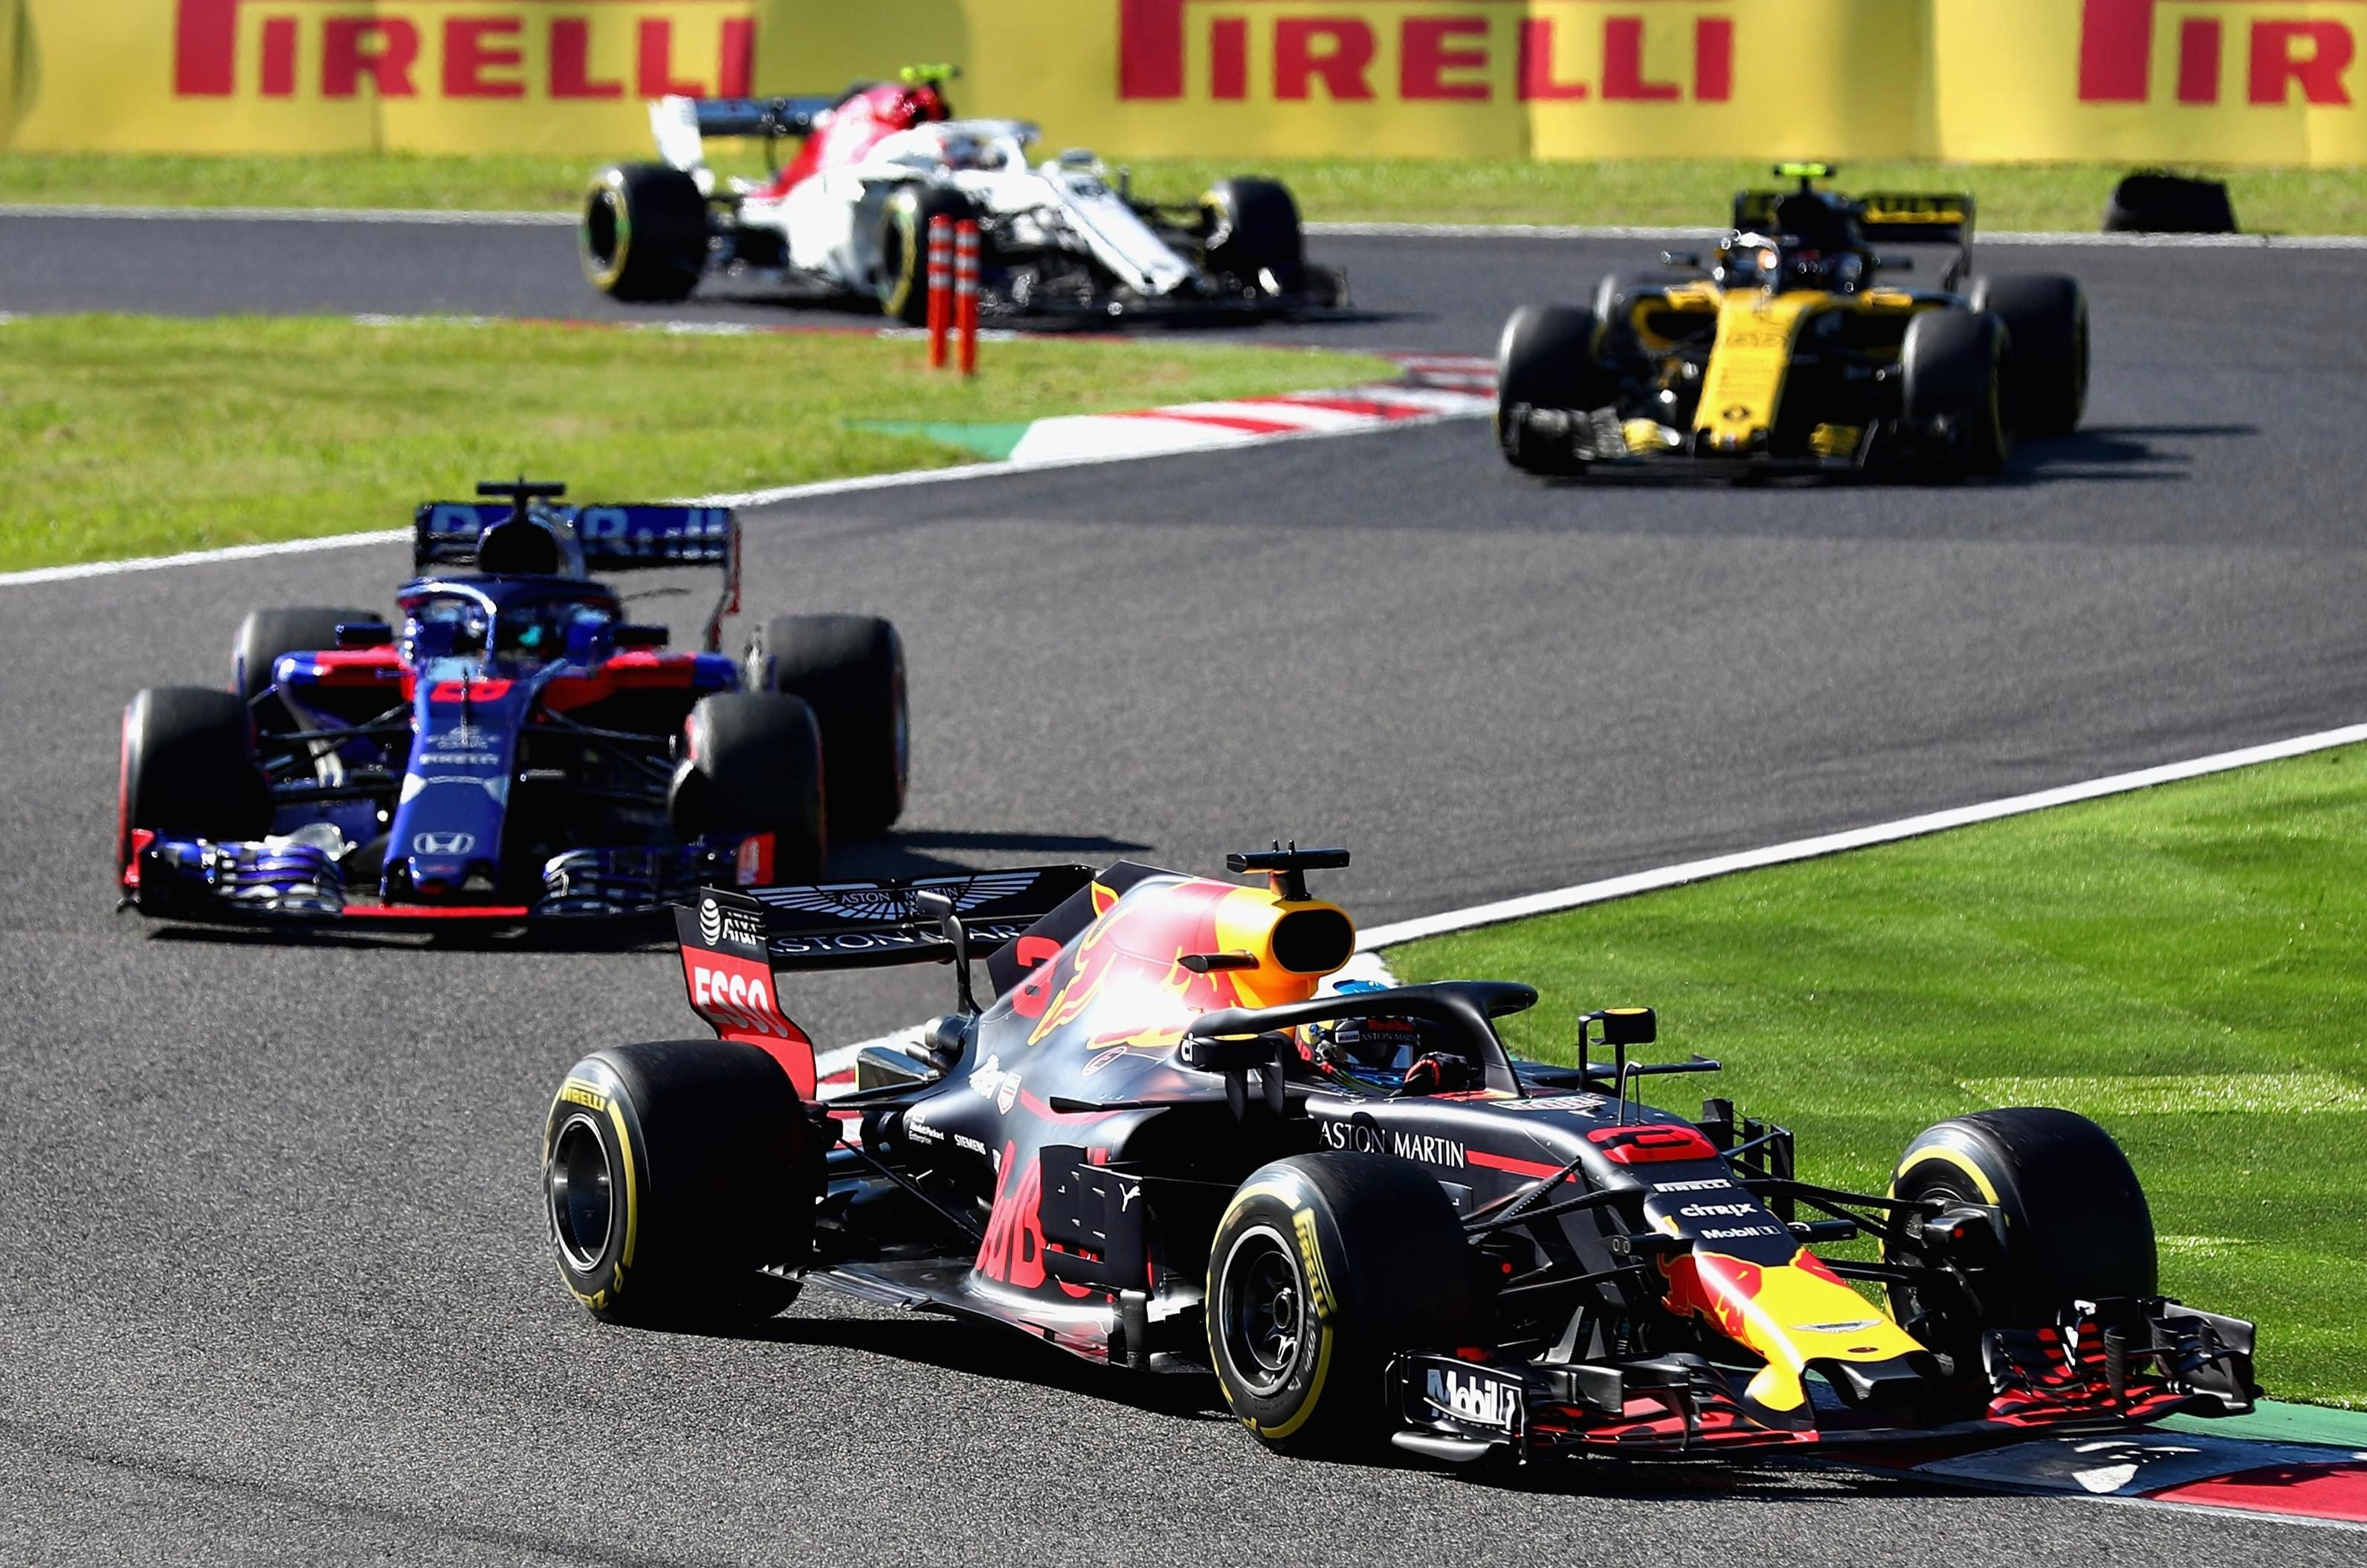 It was an excellent drive from Daniel Ricciardo who started 15th on the grid but worked his way up to fourth